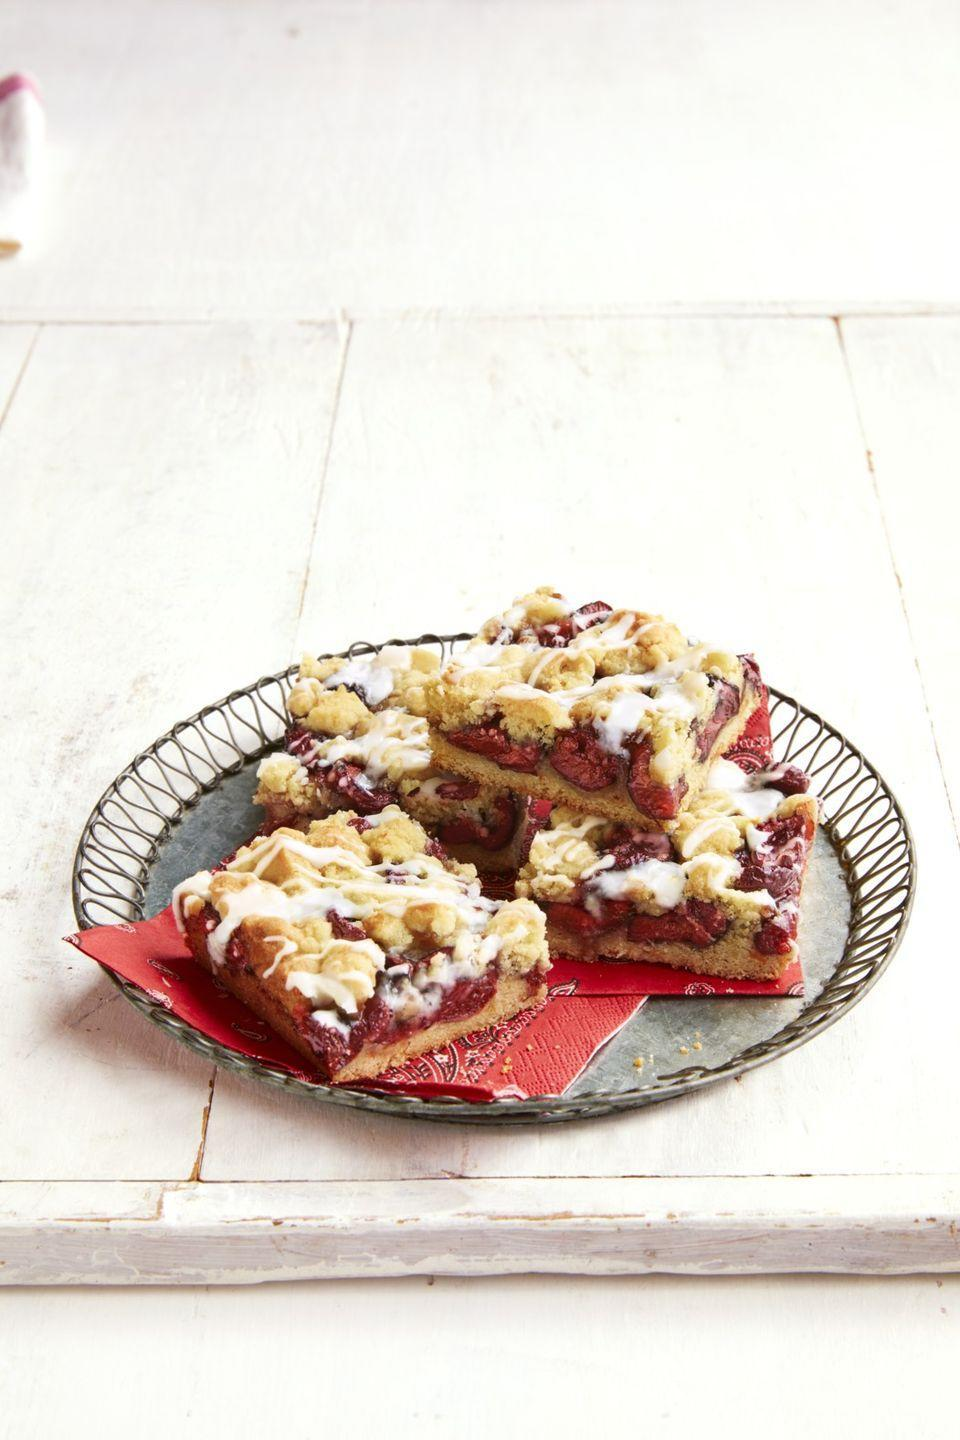 """<p>Why make your usual cookies when you could make crumbly, cherry-packed, icing-covered cookie <em>bars</em>?</p><p><strong><a href=""""https://thepioneerwoman.com/food-cooking/recipes/a32098188/cherry-cookie-bars-recipe/"""" rel=""""nofollow noopener"""" target=""""_blank"""" data-ylk=""""slk:Get the recipe."""" class=""""link rapid-noclick-resp"""">Get the recipe.</a></strong></p><p> <a class=""""link rapid-noclick-resp"""" href=""""https://go.redirectingat.com?id=74968X1596630&url=https%3A%2F%2Fwww.walmart.com%2Fip%2FThe-Pioneer-Woman-Spring-Bouquet-2-Piece-Baker-Set%2F595449072&sref=https%3A%2F%2Fwww.thepioneerwoman.com%2Ffood-cooking%2Fmeals-menus%2Fg32109085%2Ffourth-of-july-desserts%2F"""" rel=""""nofollow noopener"""" target=""""_blank"""" data-ylk=""""slk:SHOP BAKING DISHES"""">SHOP BAKING DISHES</a></p>"""